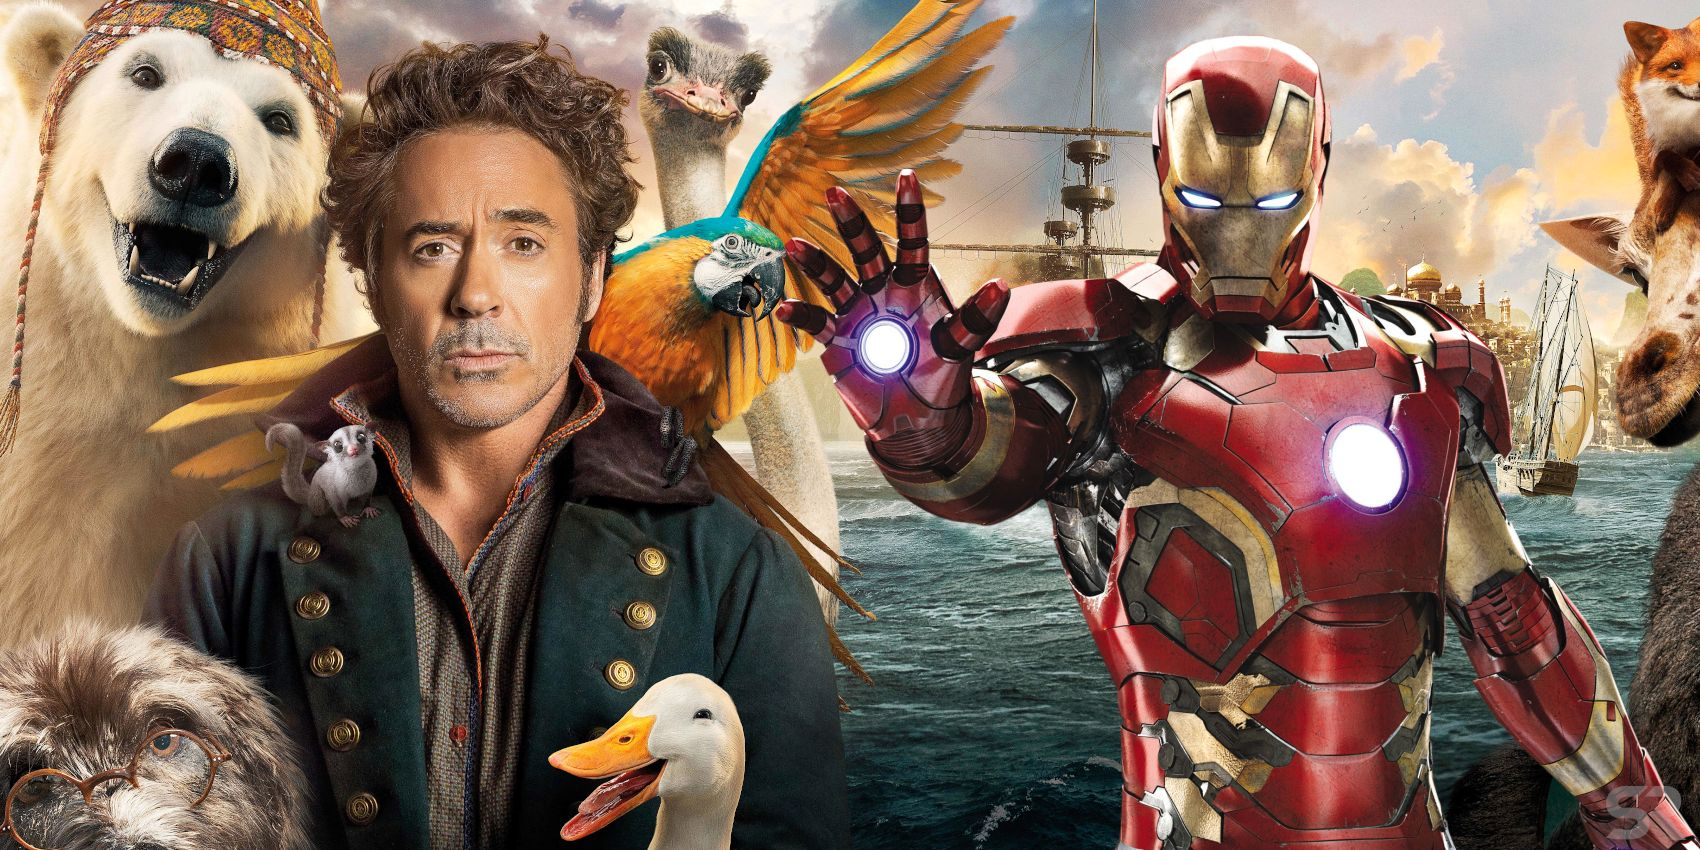 Robert Downey Jr. wants to play Sherlock Holmes for Years